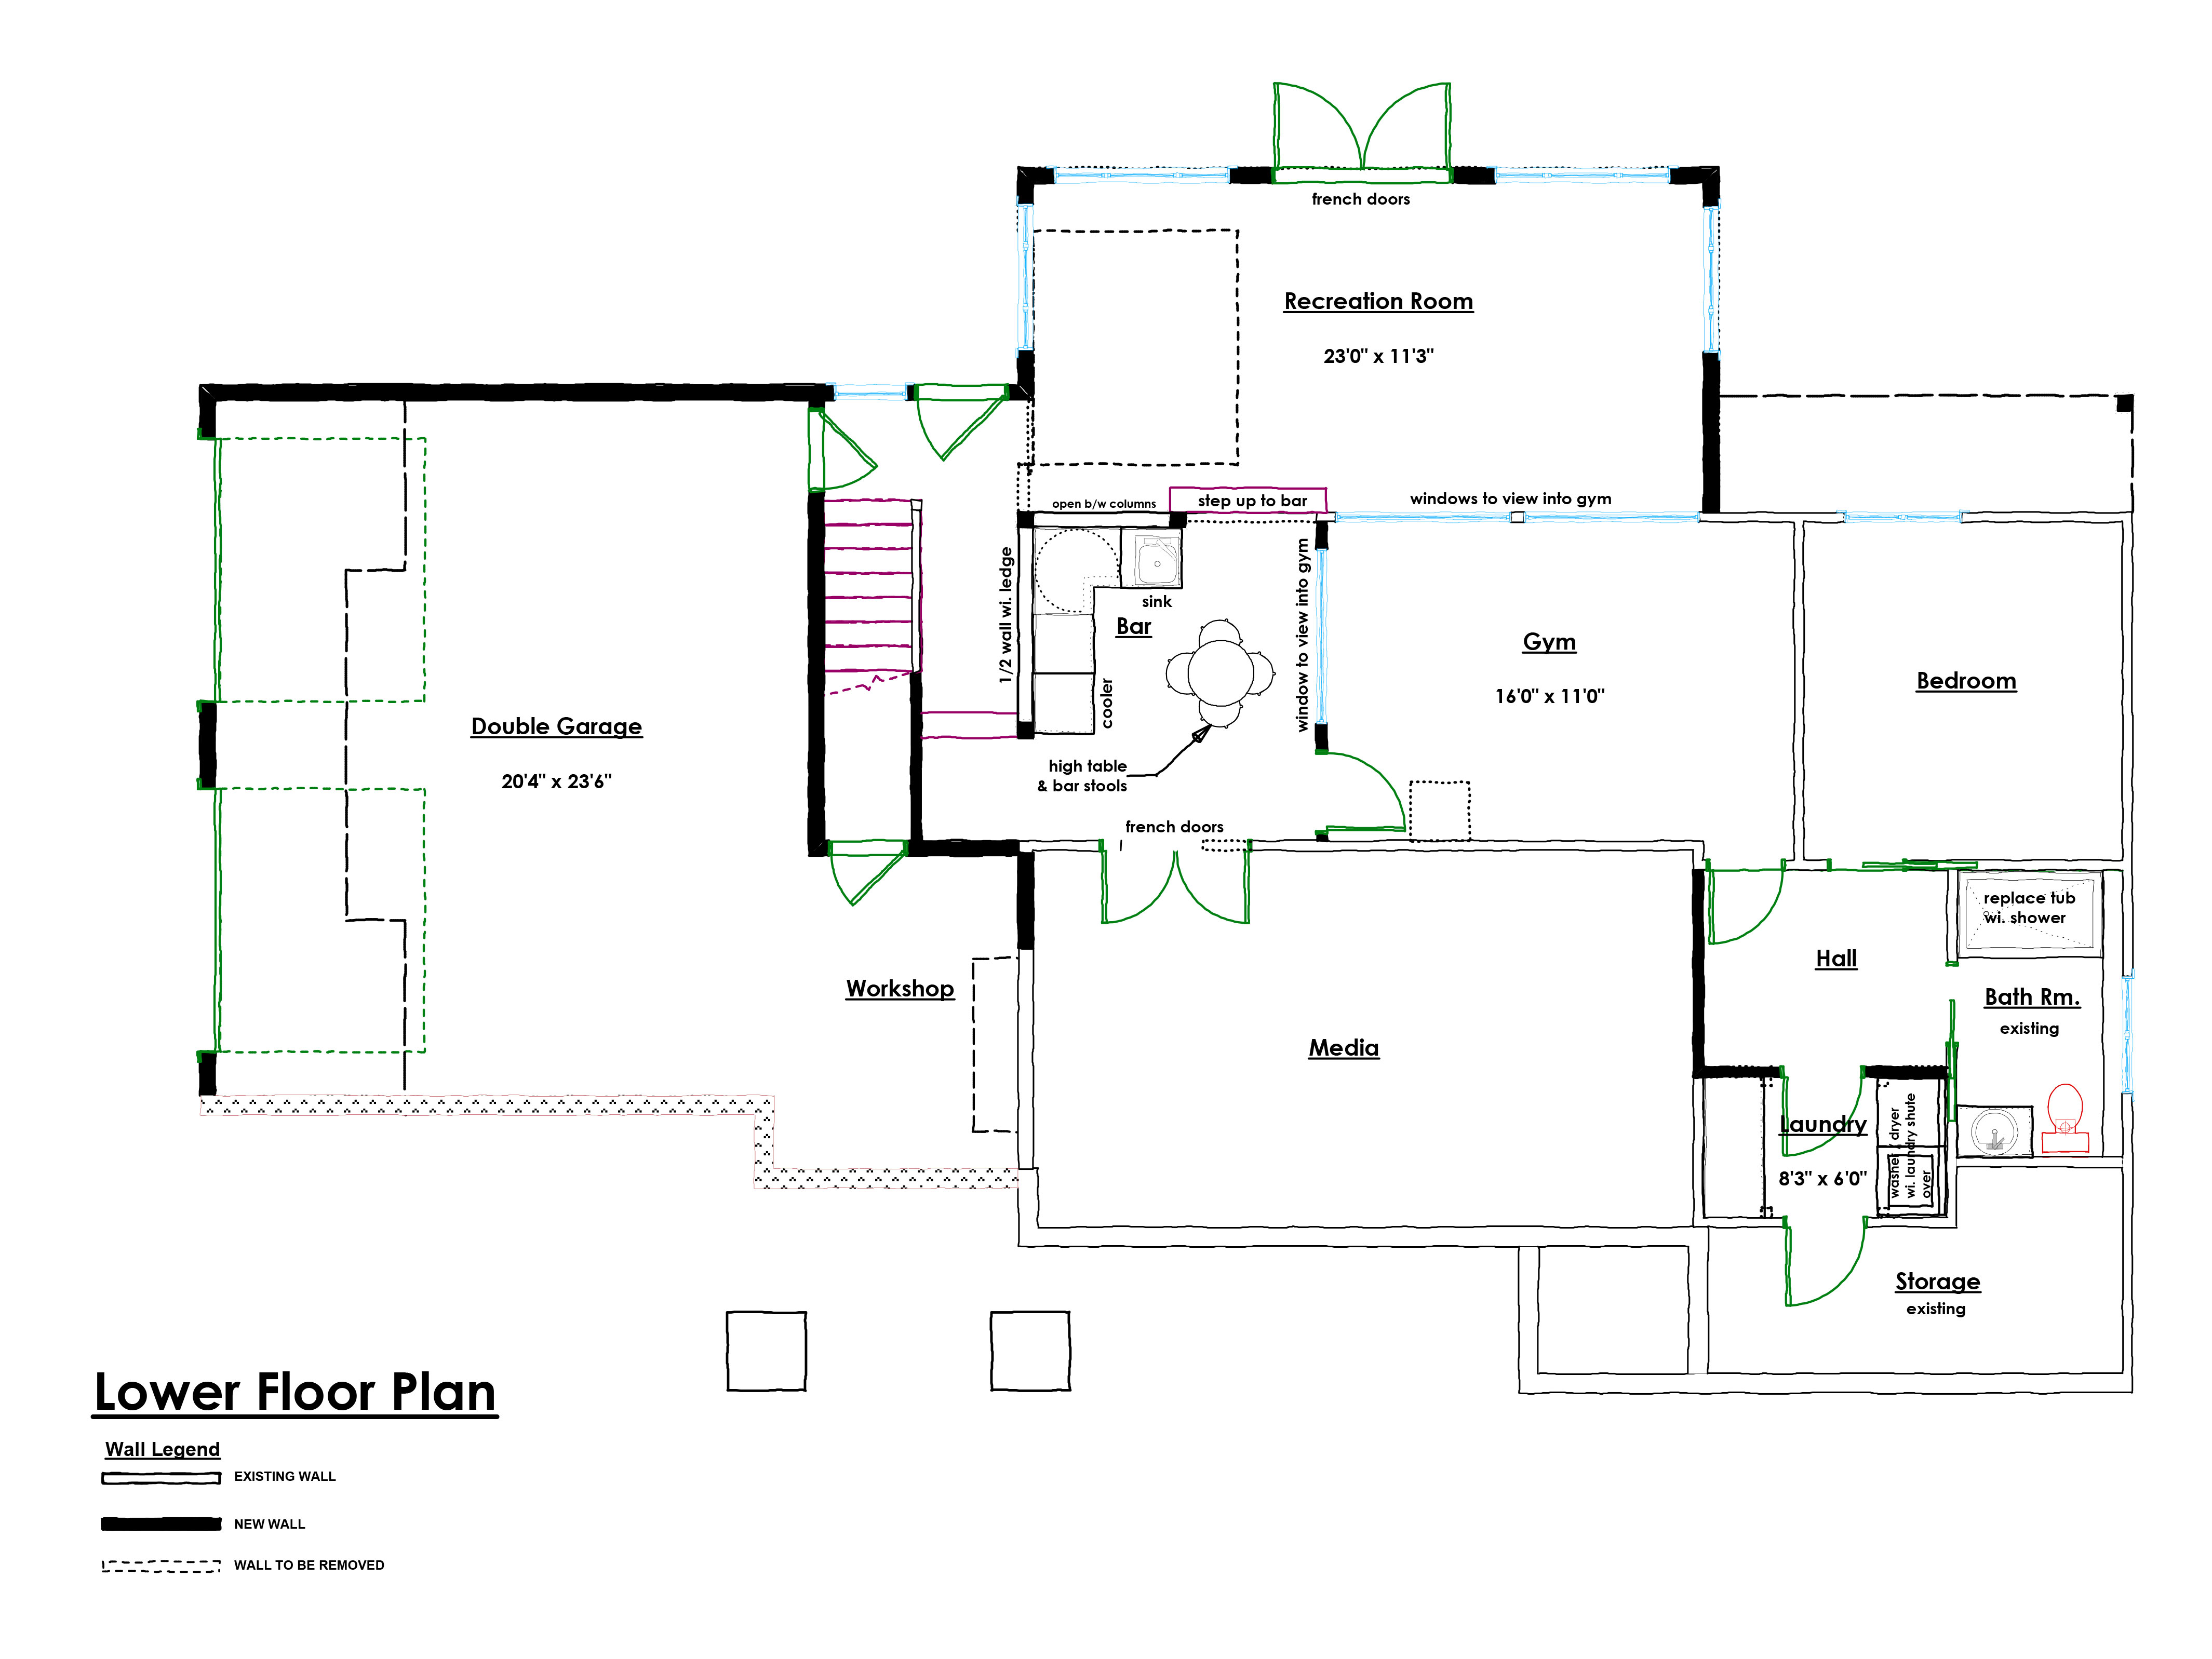 Arts and Crafts Renovation Lower Floor Plan